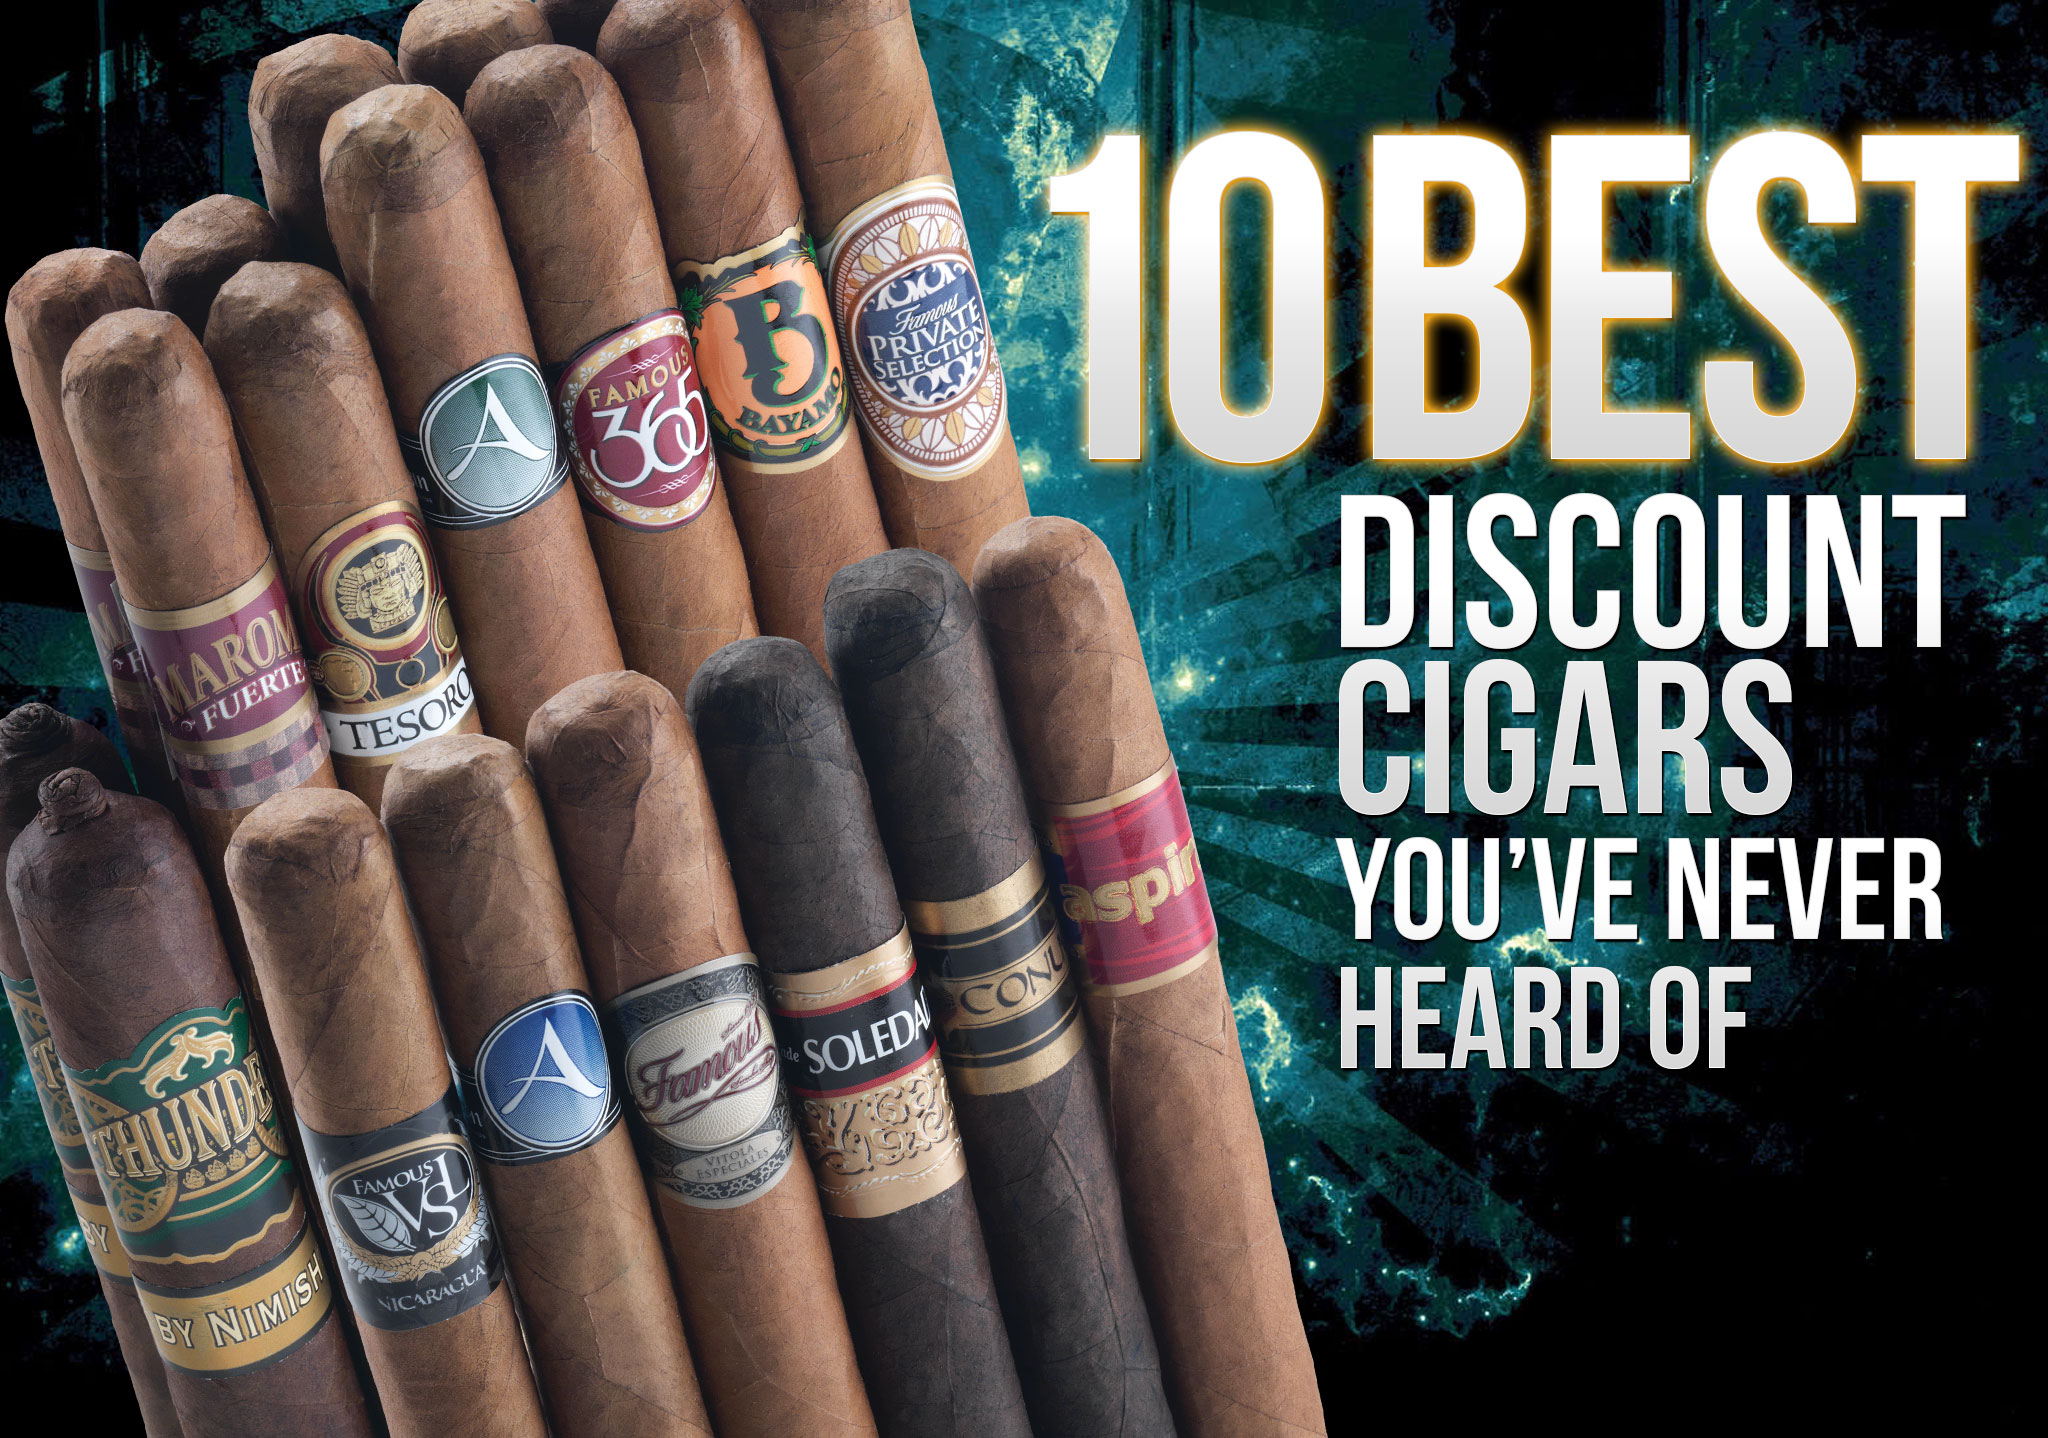 2016 CA Report: 10 Best Discount Cigars you've Never Heard Of